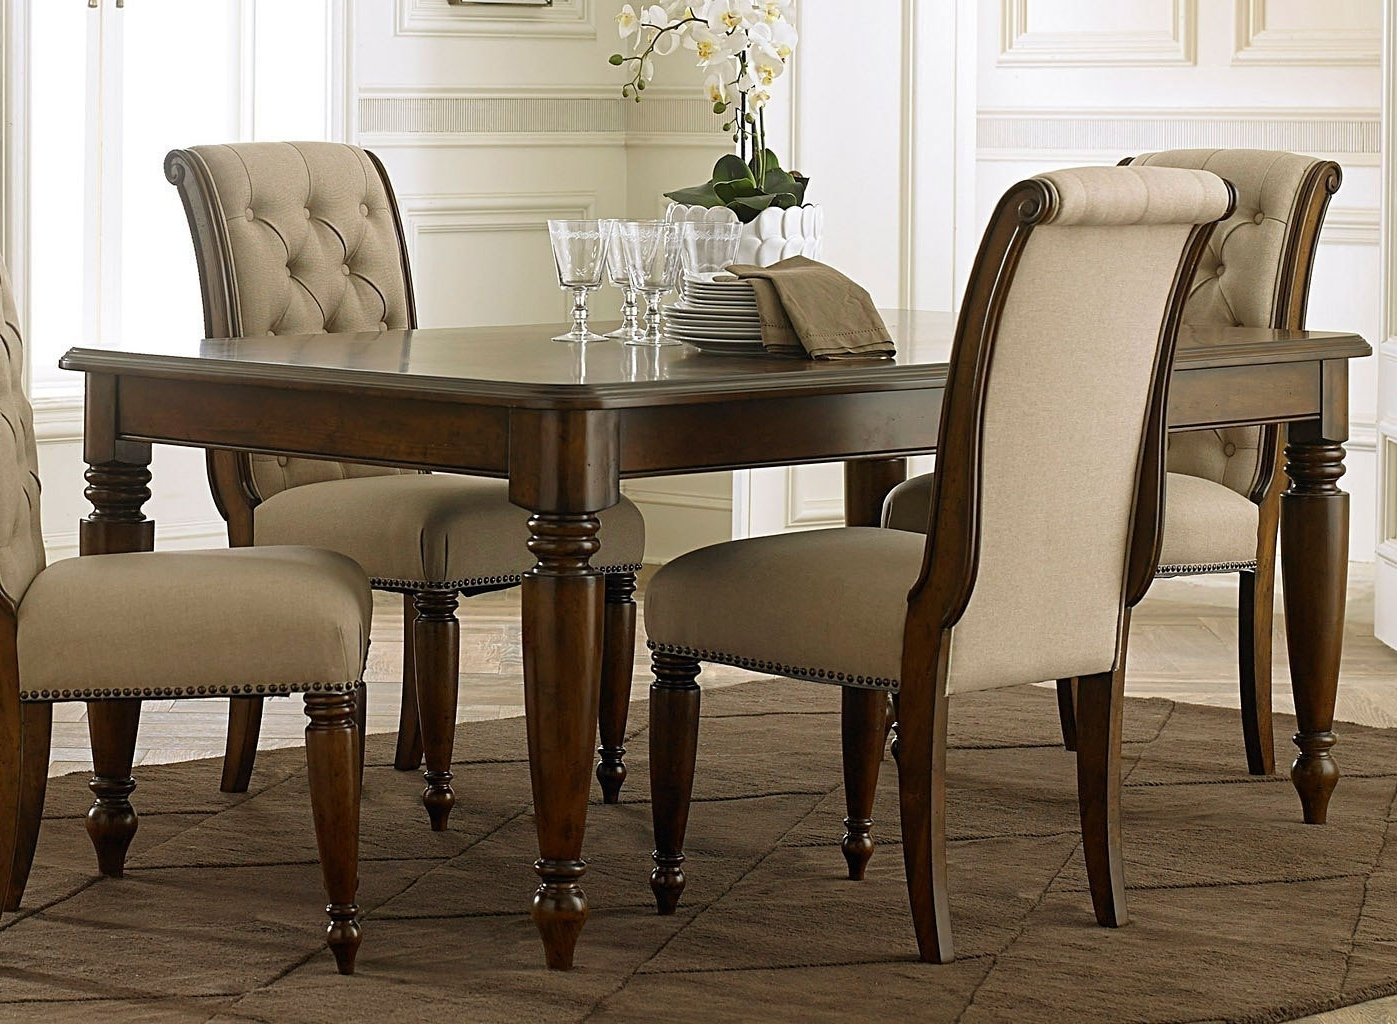 Cotswold Dining Tables Inside Most Up To Date Cotswold Dining Table (View 8 of 25)